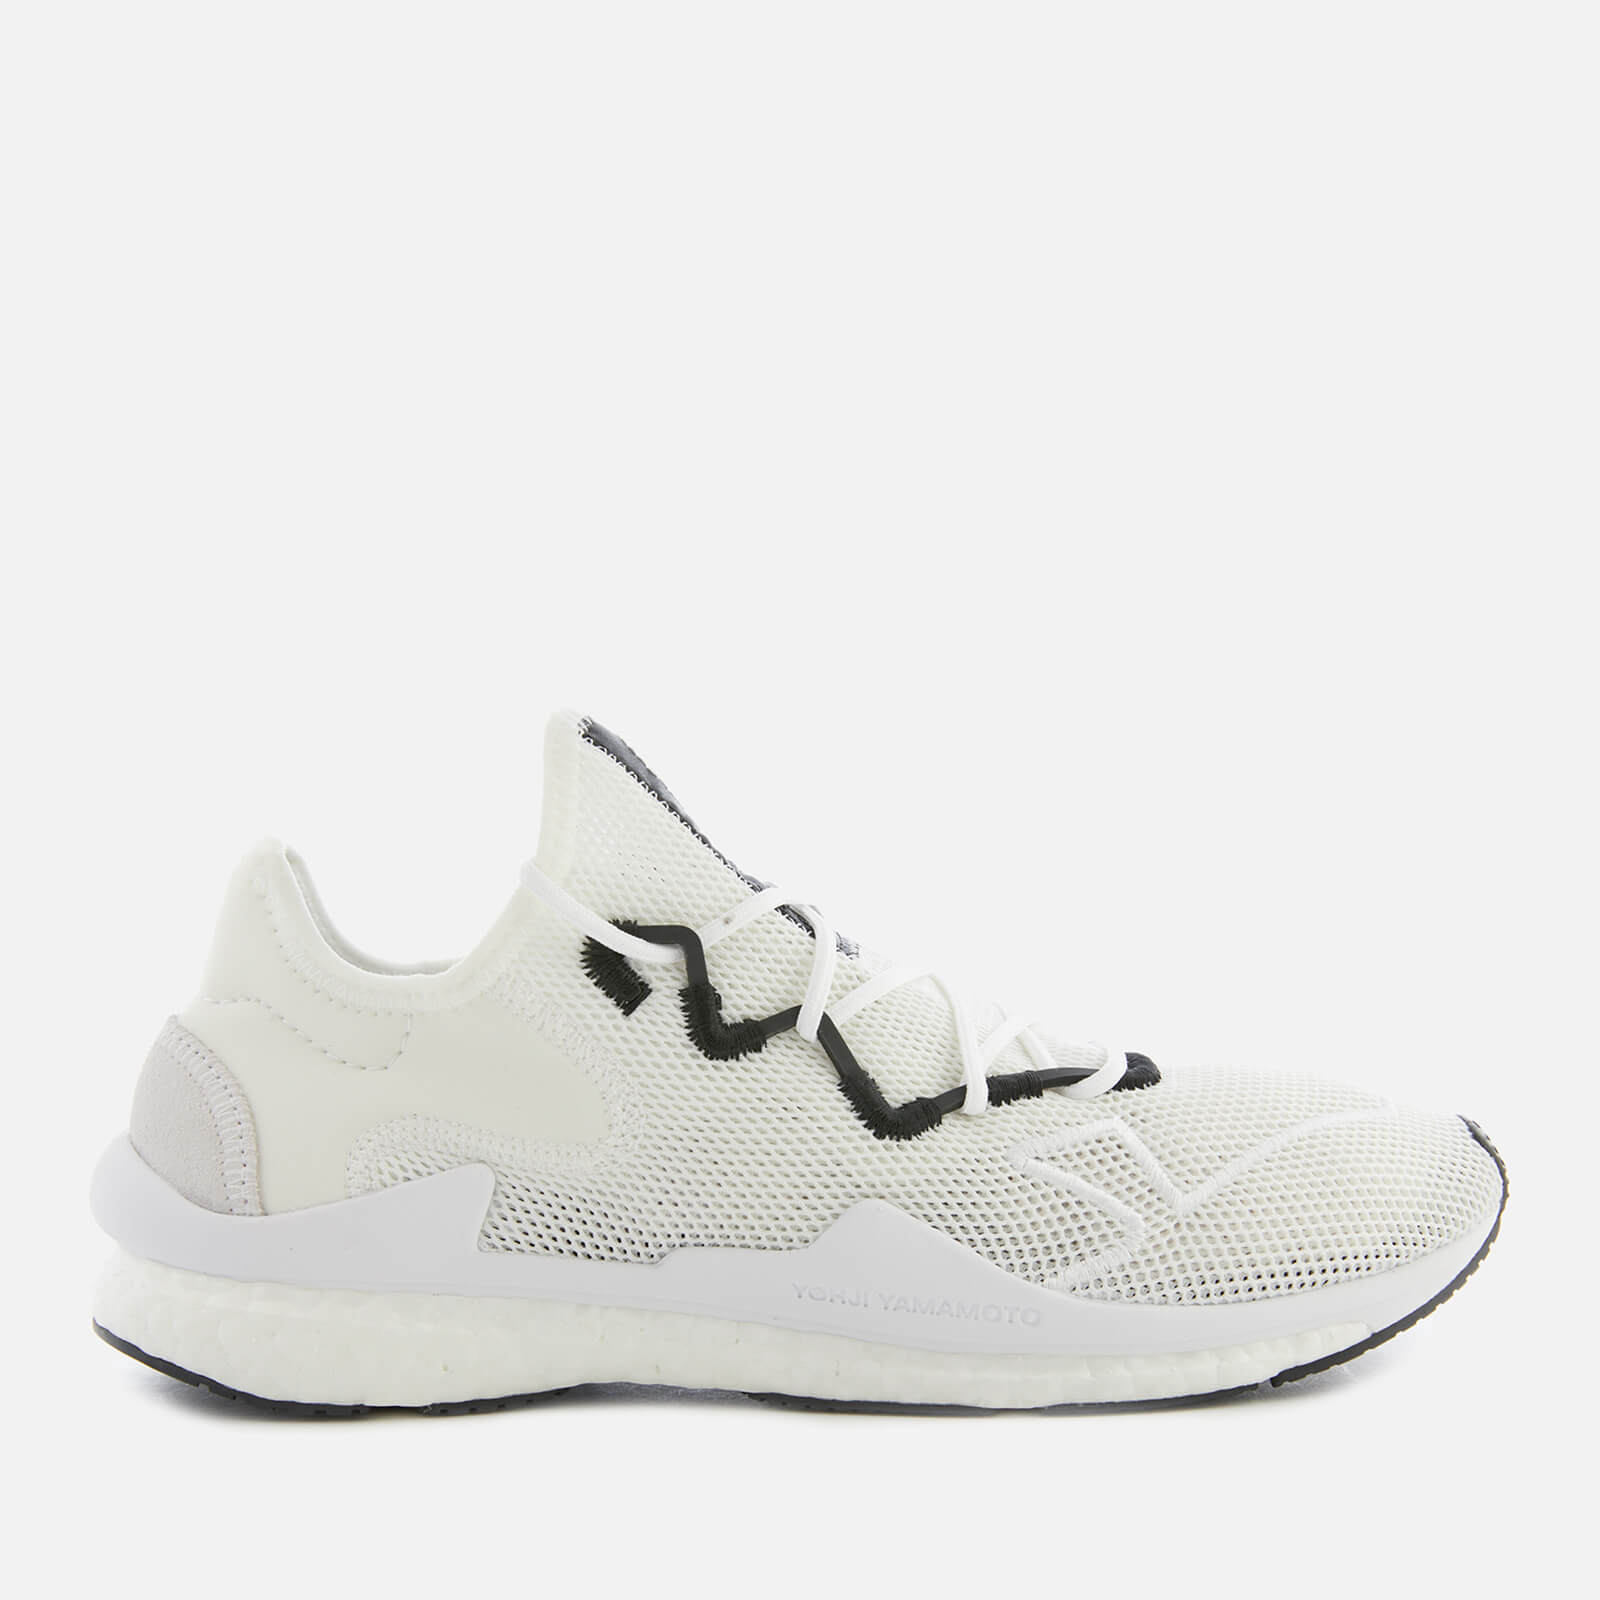 check out 0575f 4c213 Y-3 Men s Adizero Runner Trainers - White - Free UK Delivery over £50